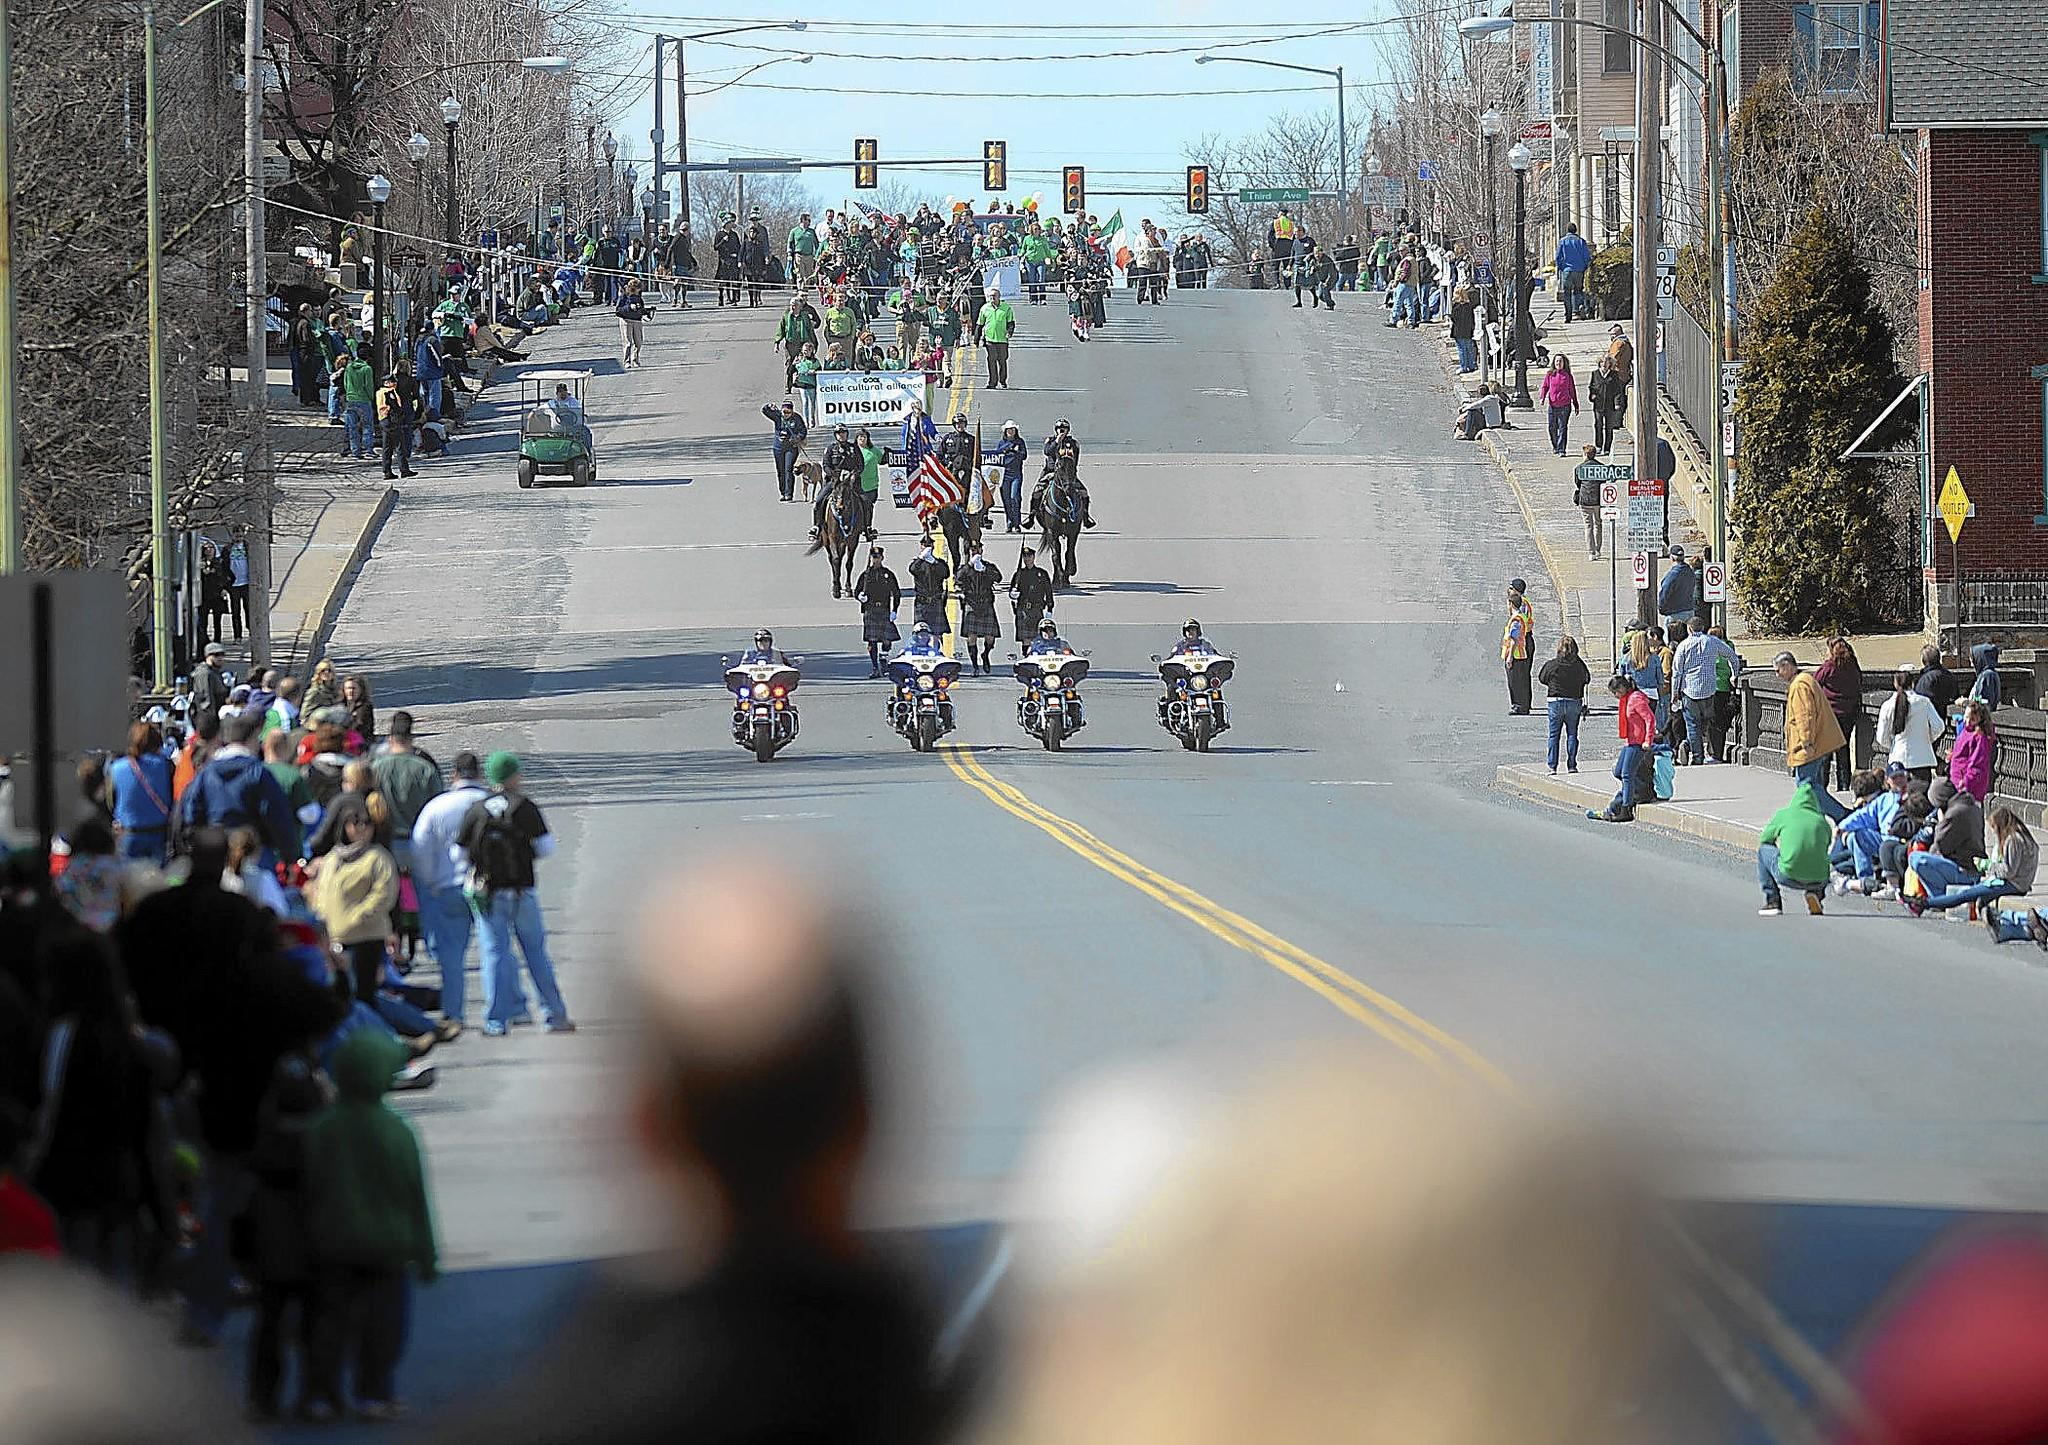 The Bethlehem Police Motorcycle Unit leads the Celtic Classic Parade in March. More (and perhaps louder) motorcycles are gathering in the city for a rally linked to Musikfest.